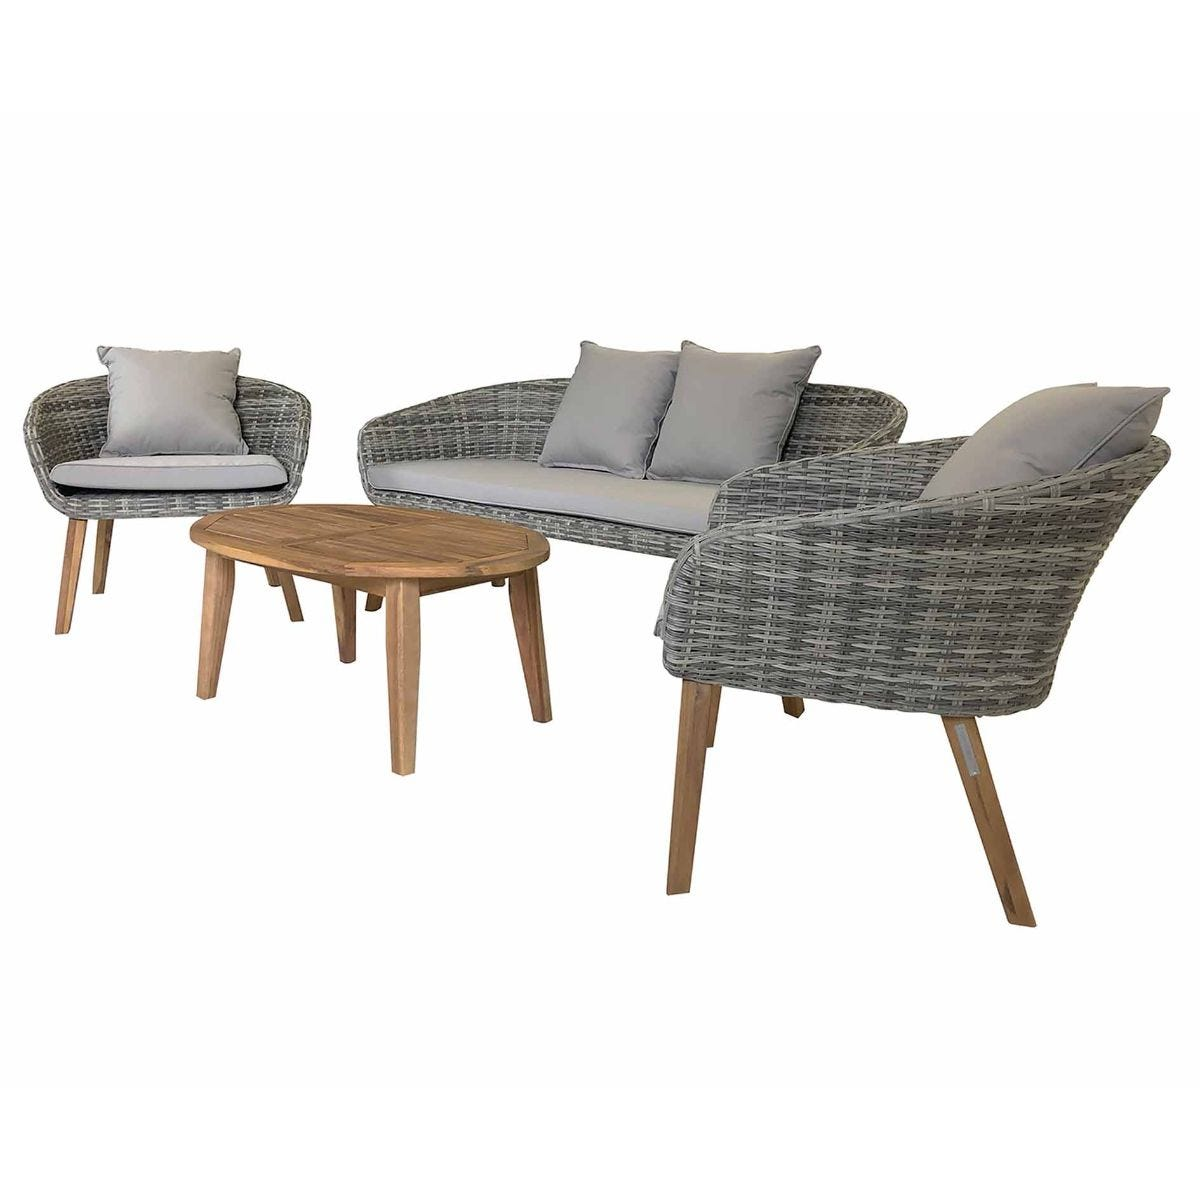 Charles Bentley Madrid Rattan Garden Lounge Set, Grey